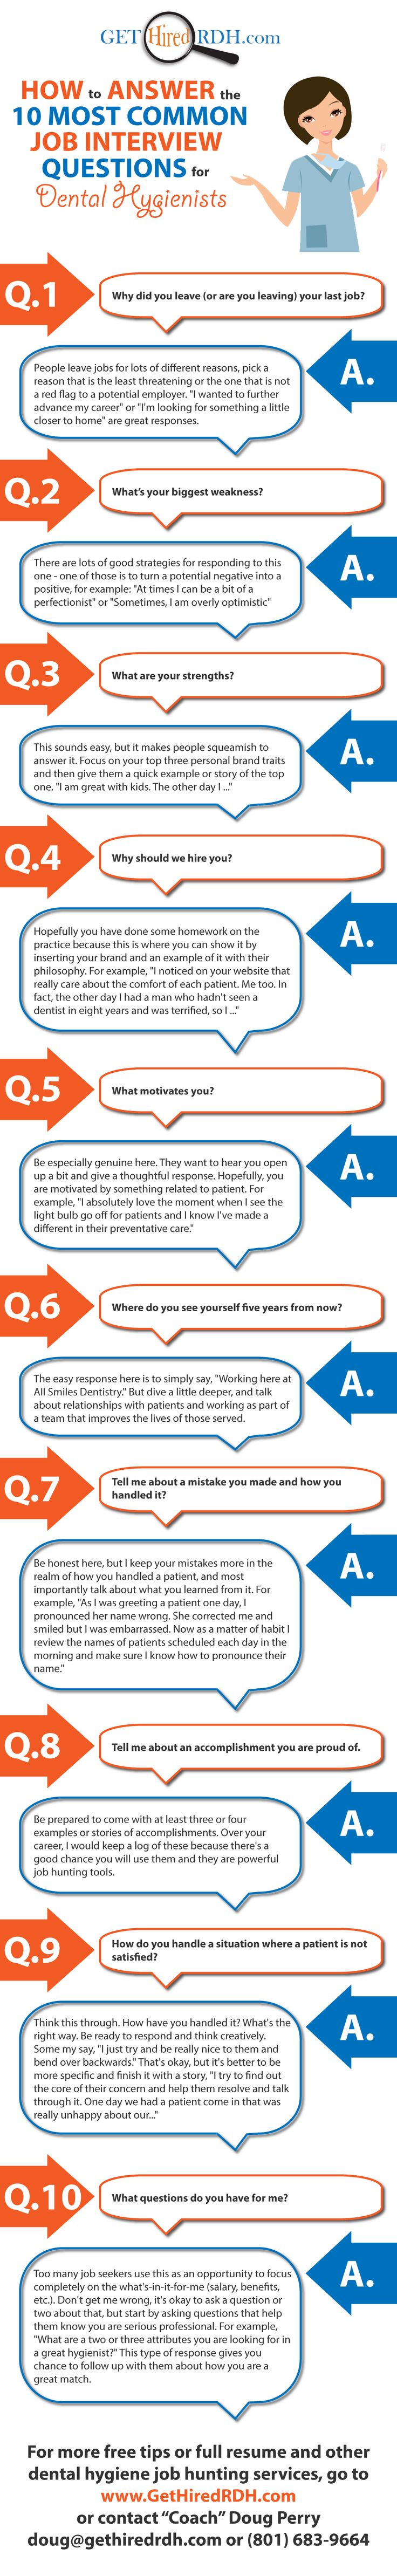 best ideas about common interview questions how to answer the 10 most common interview questions for dental hygienists get more at gethiredrdh